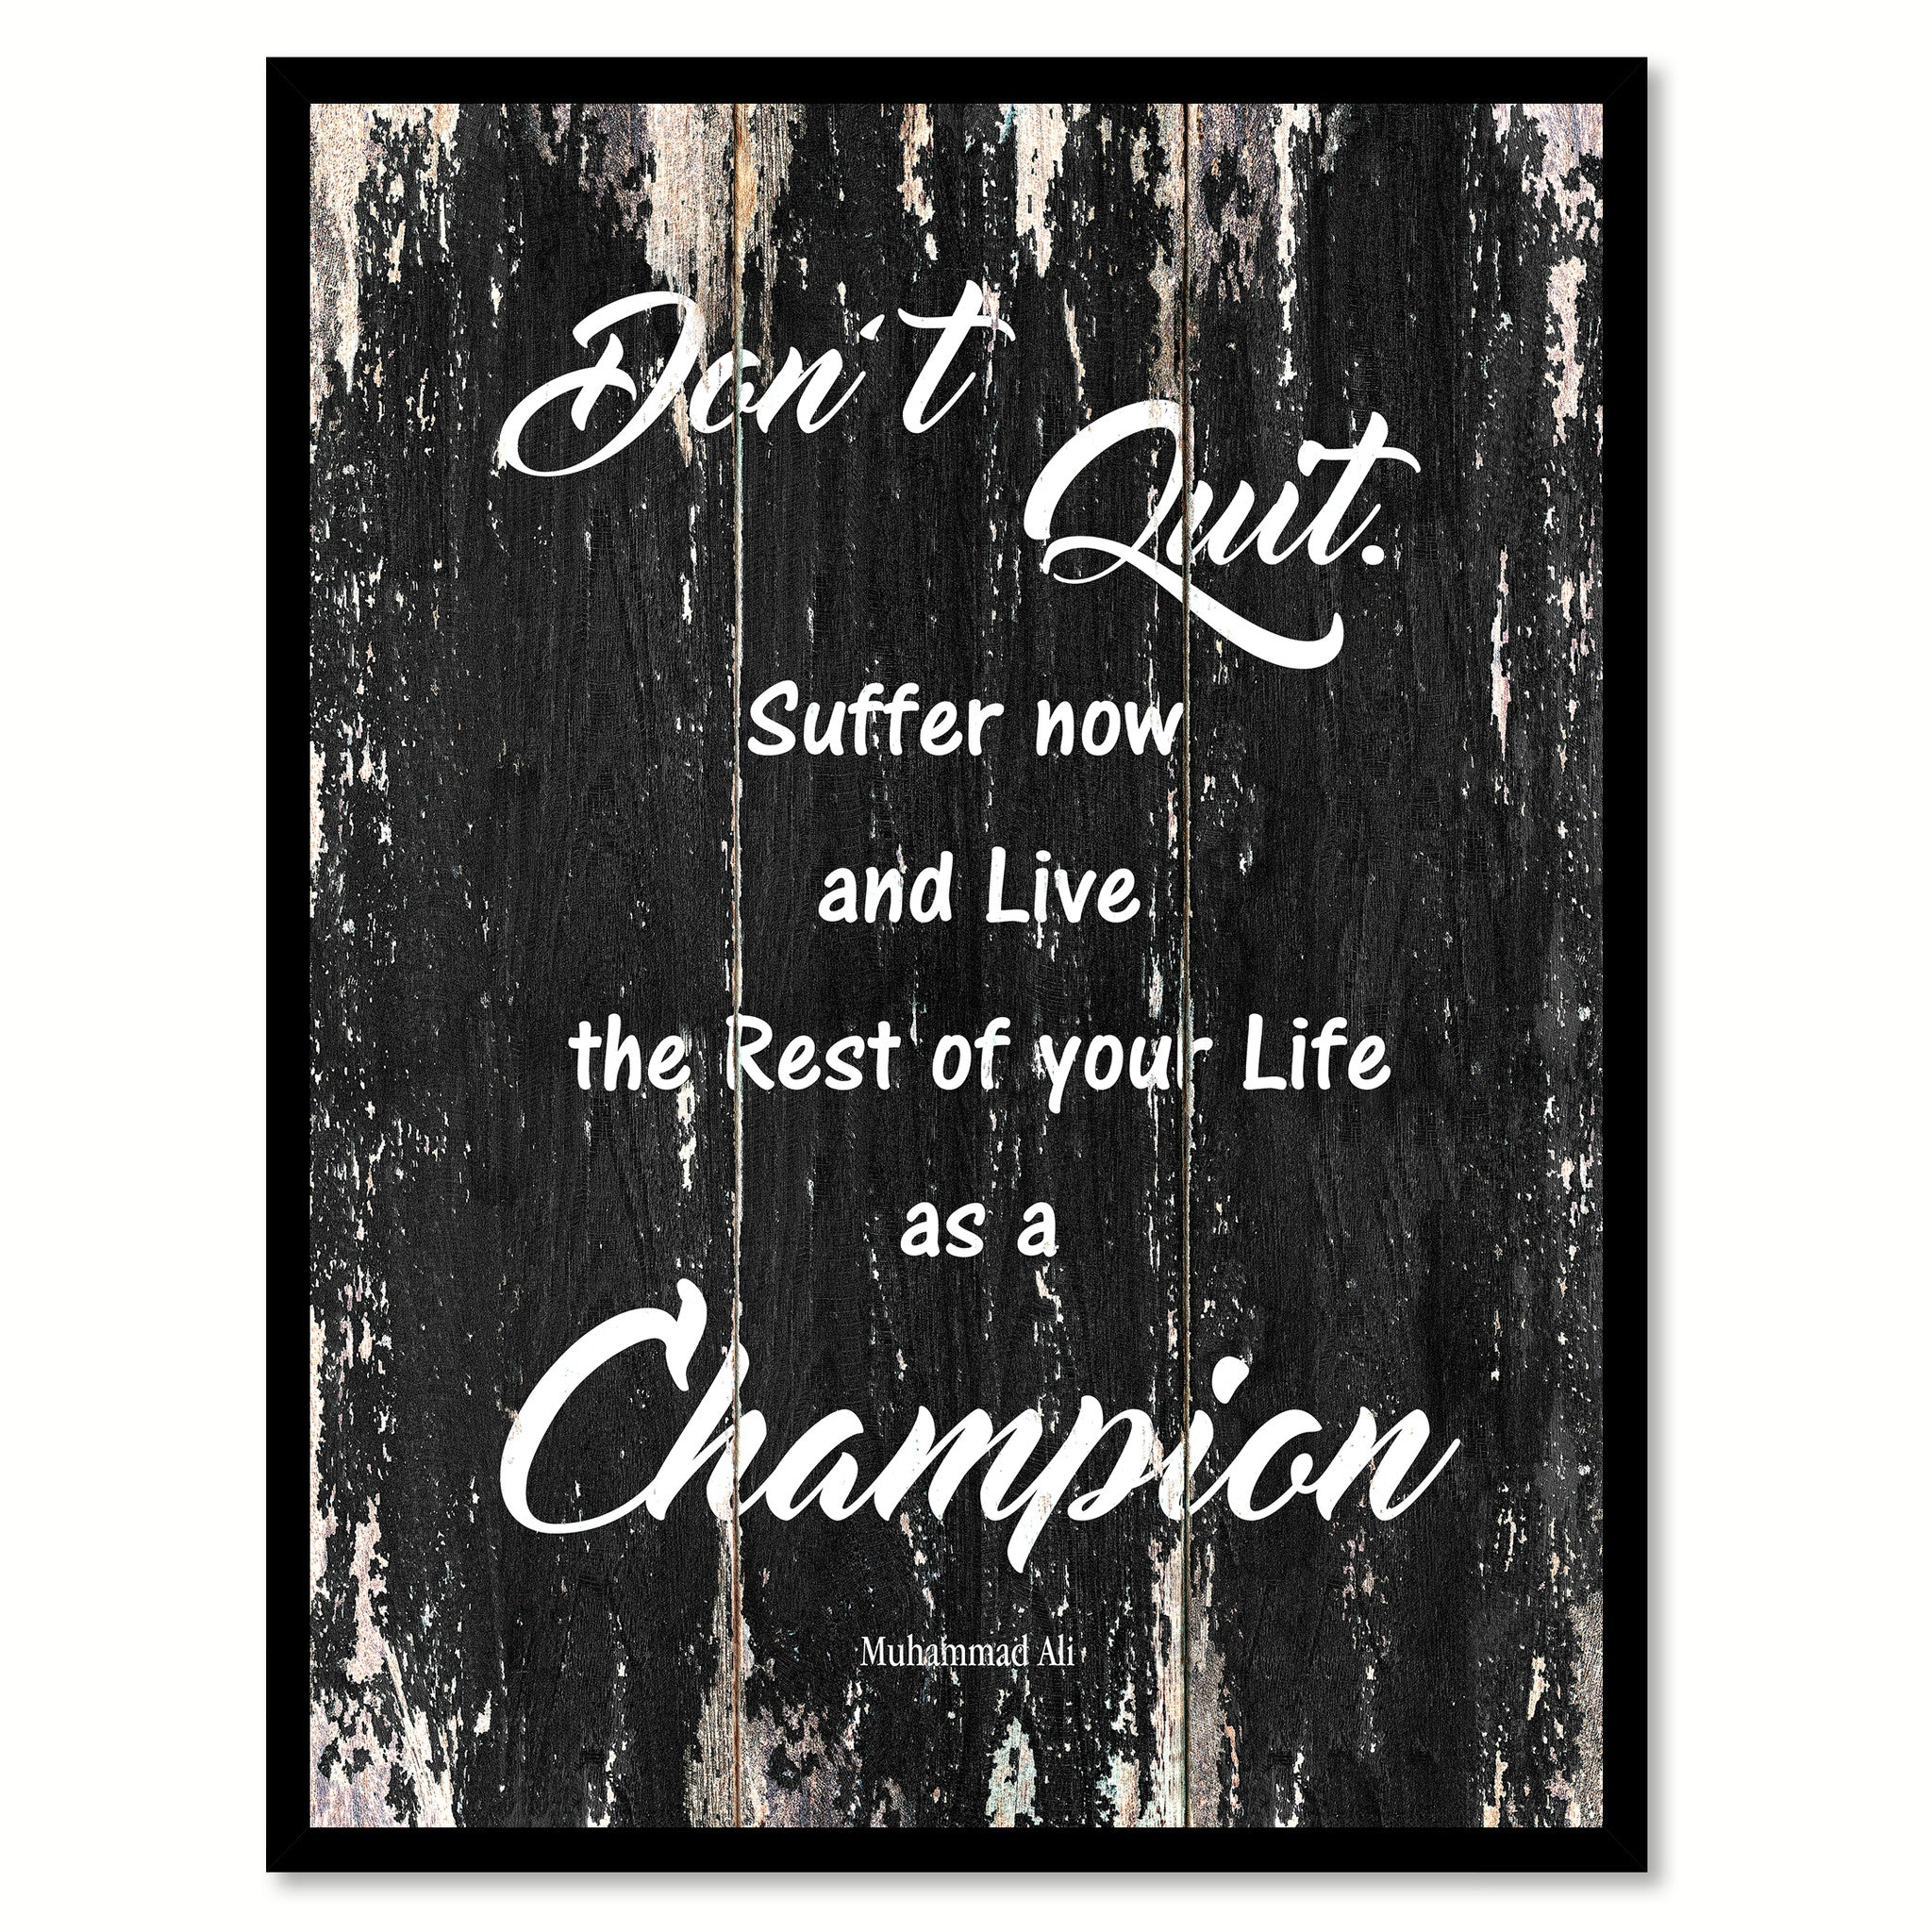 Don't quit suffer now & live the rest of your life as a champion 1 Motivational Quote Saying Canvas Print with Picture Frame Home Decor Wall Art